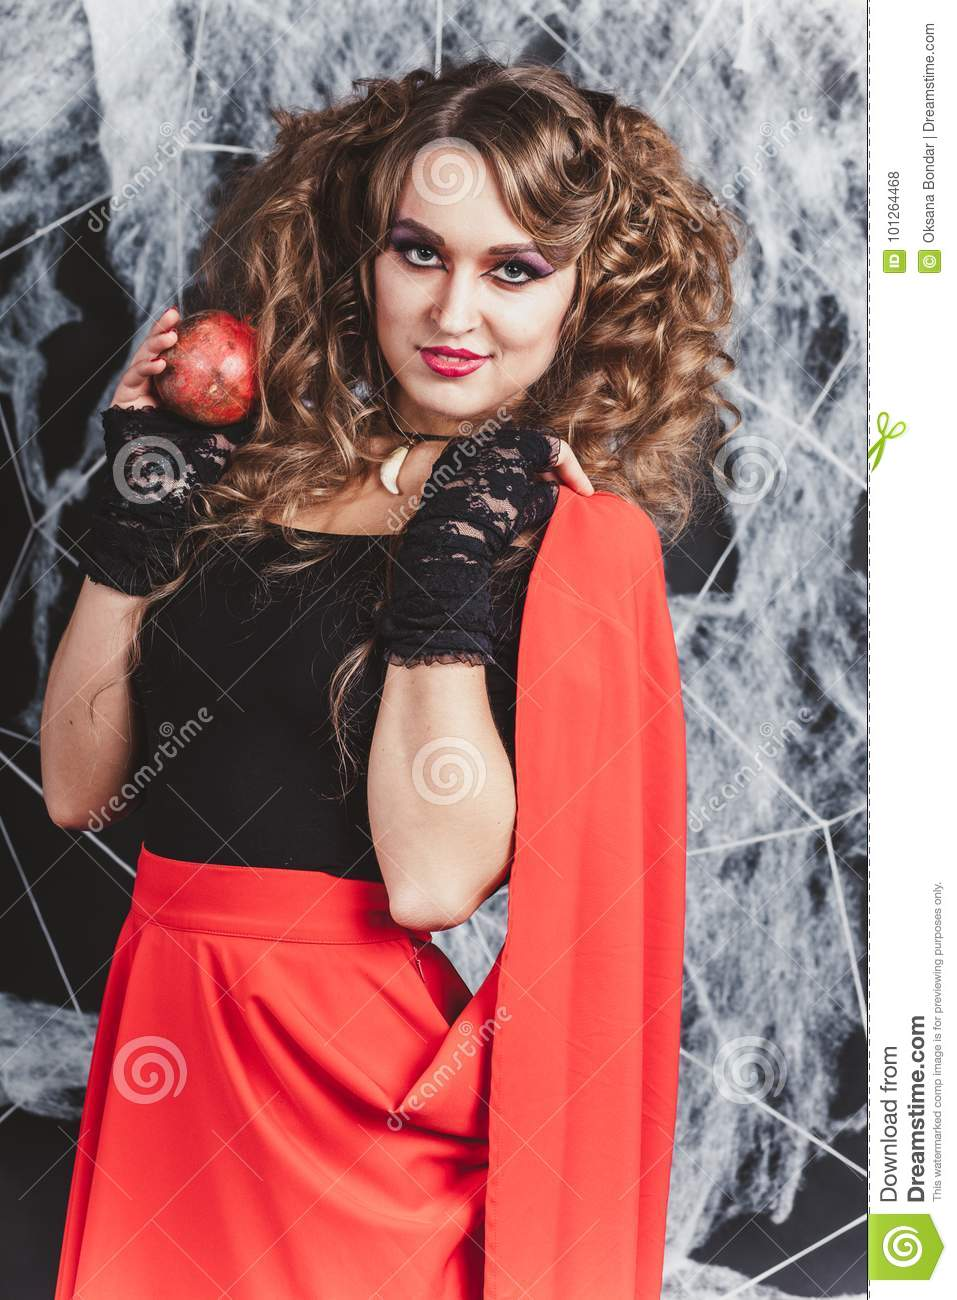 97ade0e937 A healthy beautiful young girl with a pomegranate in her hand. Wears black  blouse and red skirt. Spider web on background. Halloween concept.